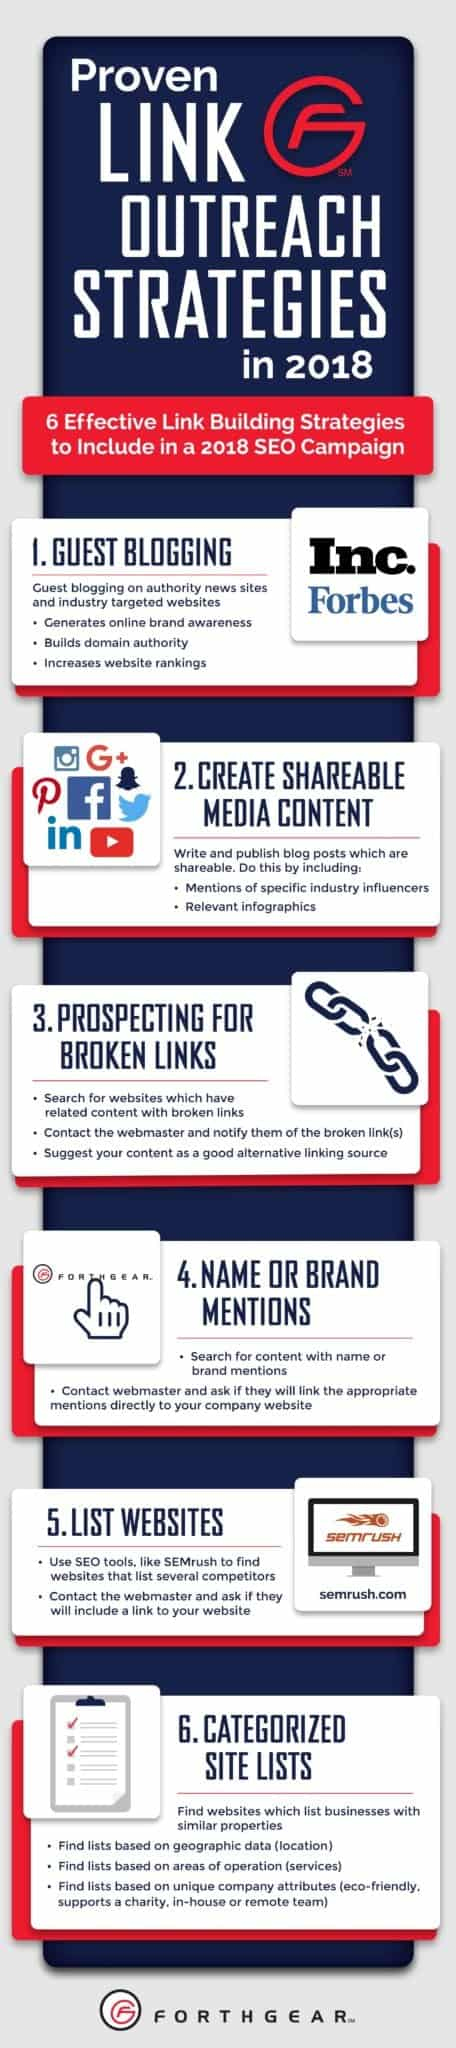 Link Outreach Strategies 2018 Infographic